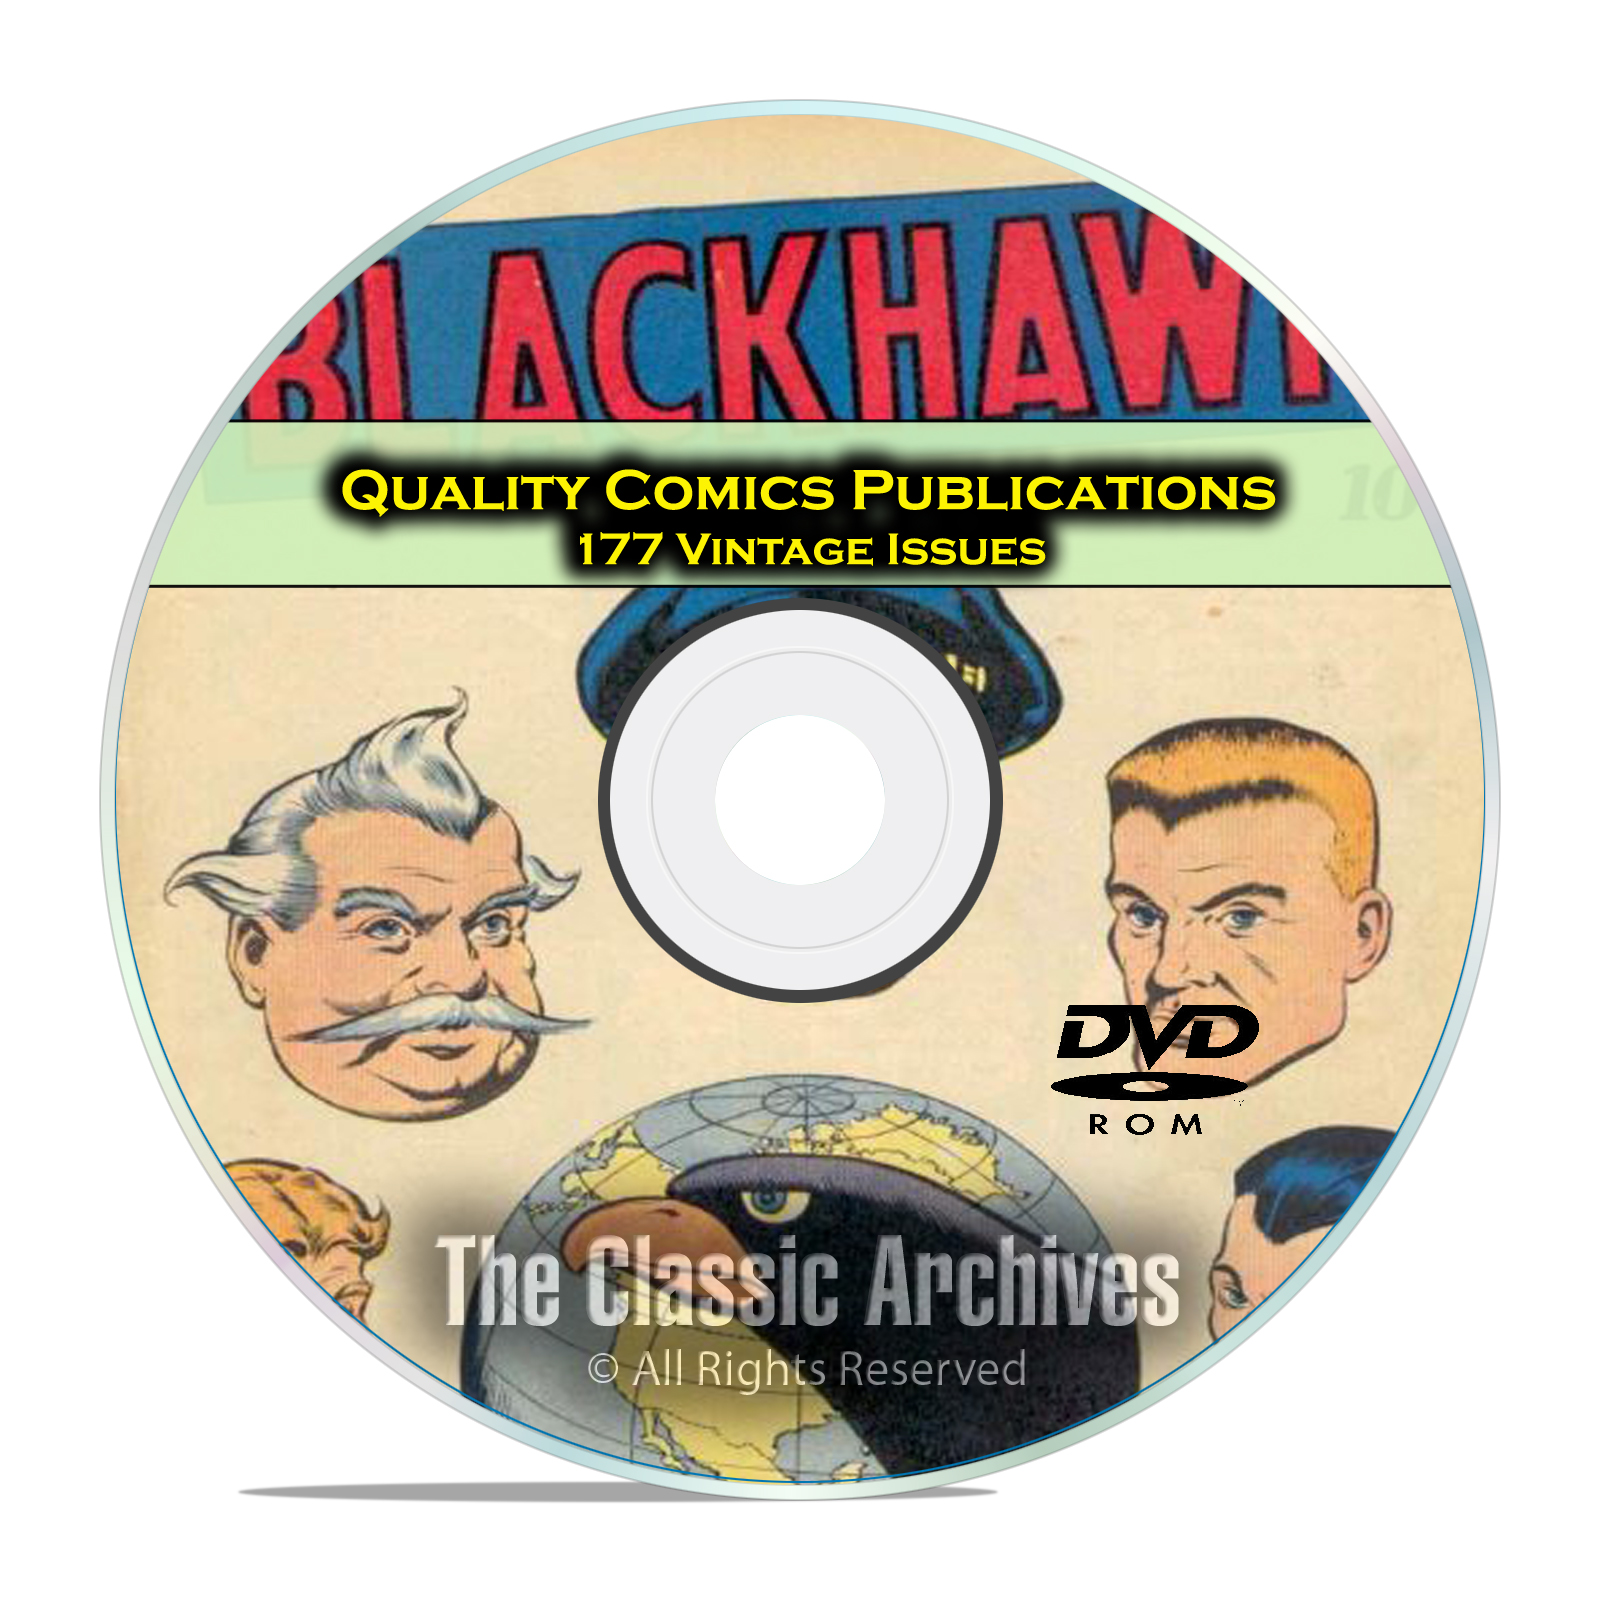 Quality Comics, Blackhawk, Warfront, Gabby, 177 Golden Age Comics DVD